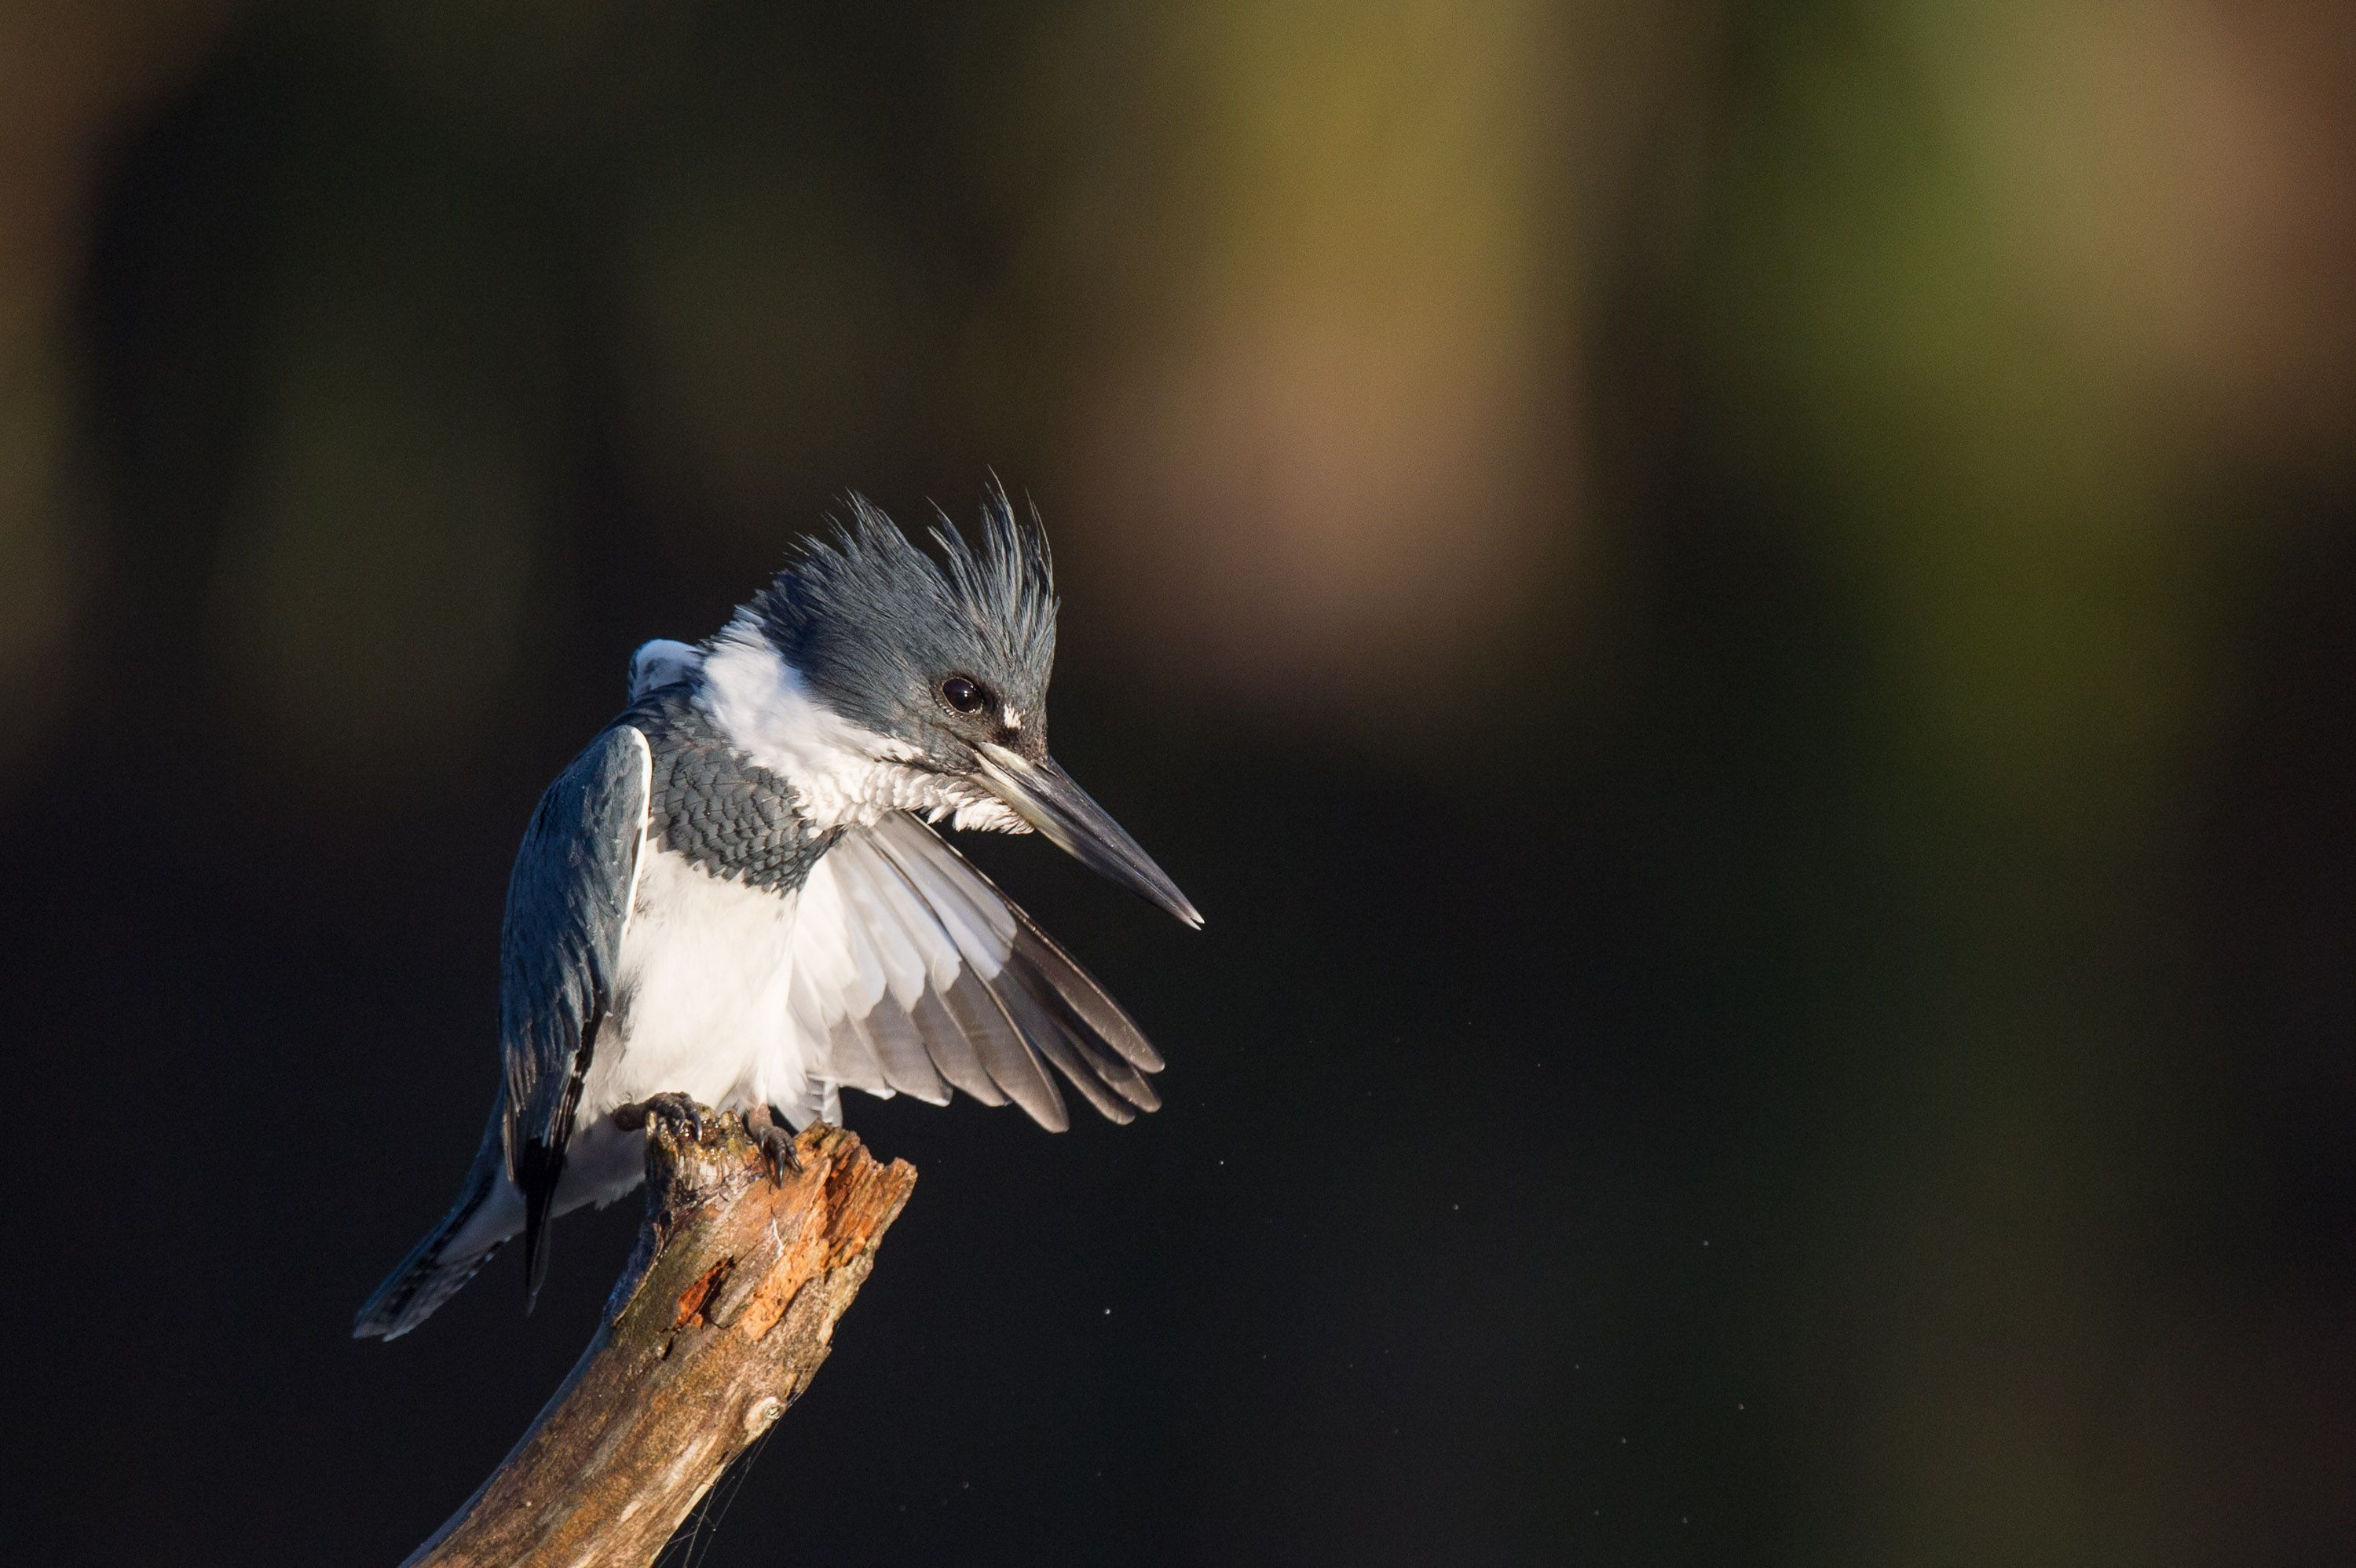 Kingfisher Wallpapers: Belted Kingfisher Wallpapers Backgrounds